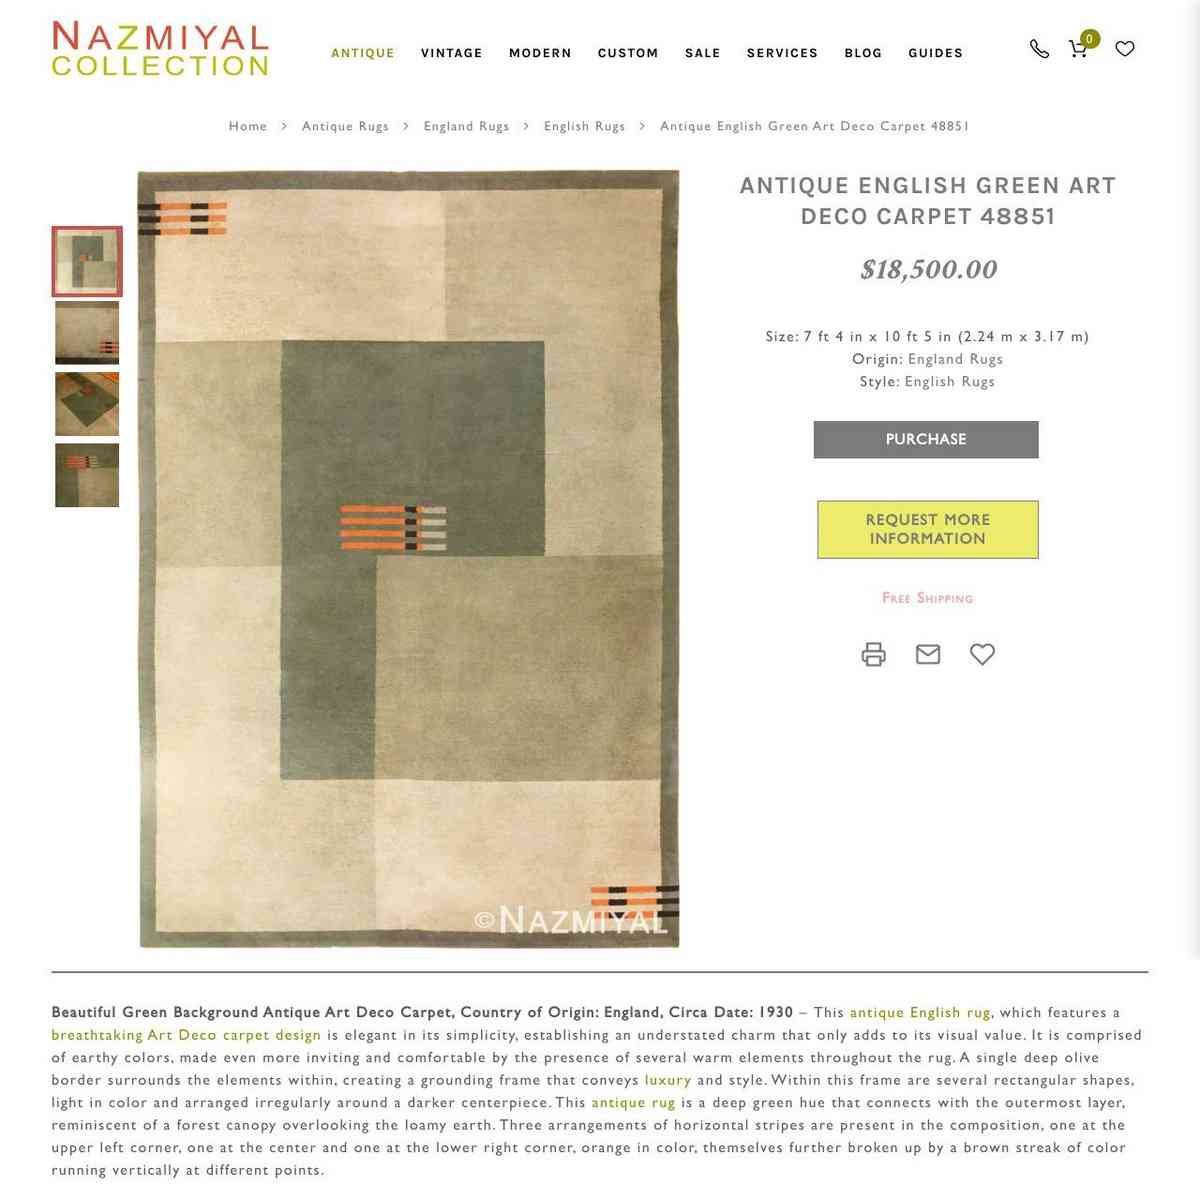 Antique English Green Art Deco Carpet 48851 Nazmiyal Antique Rugs